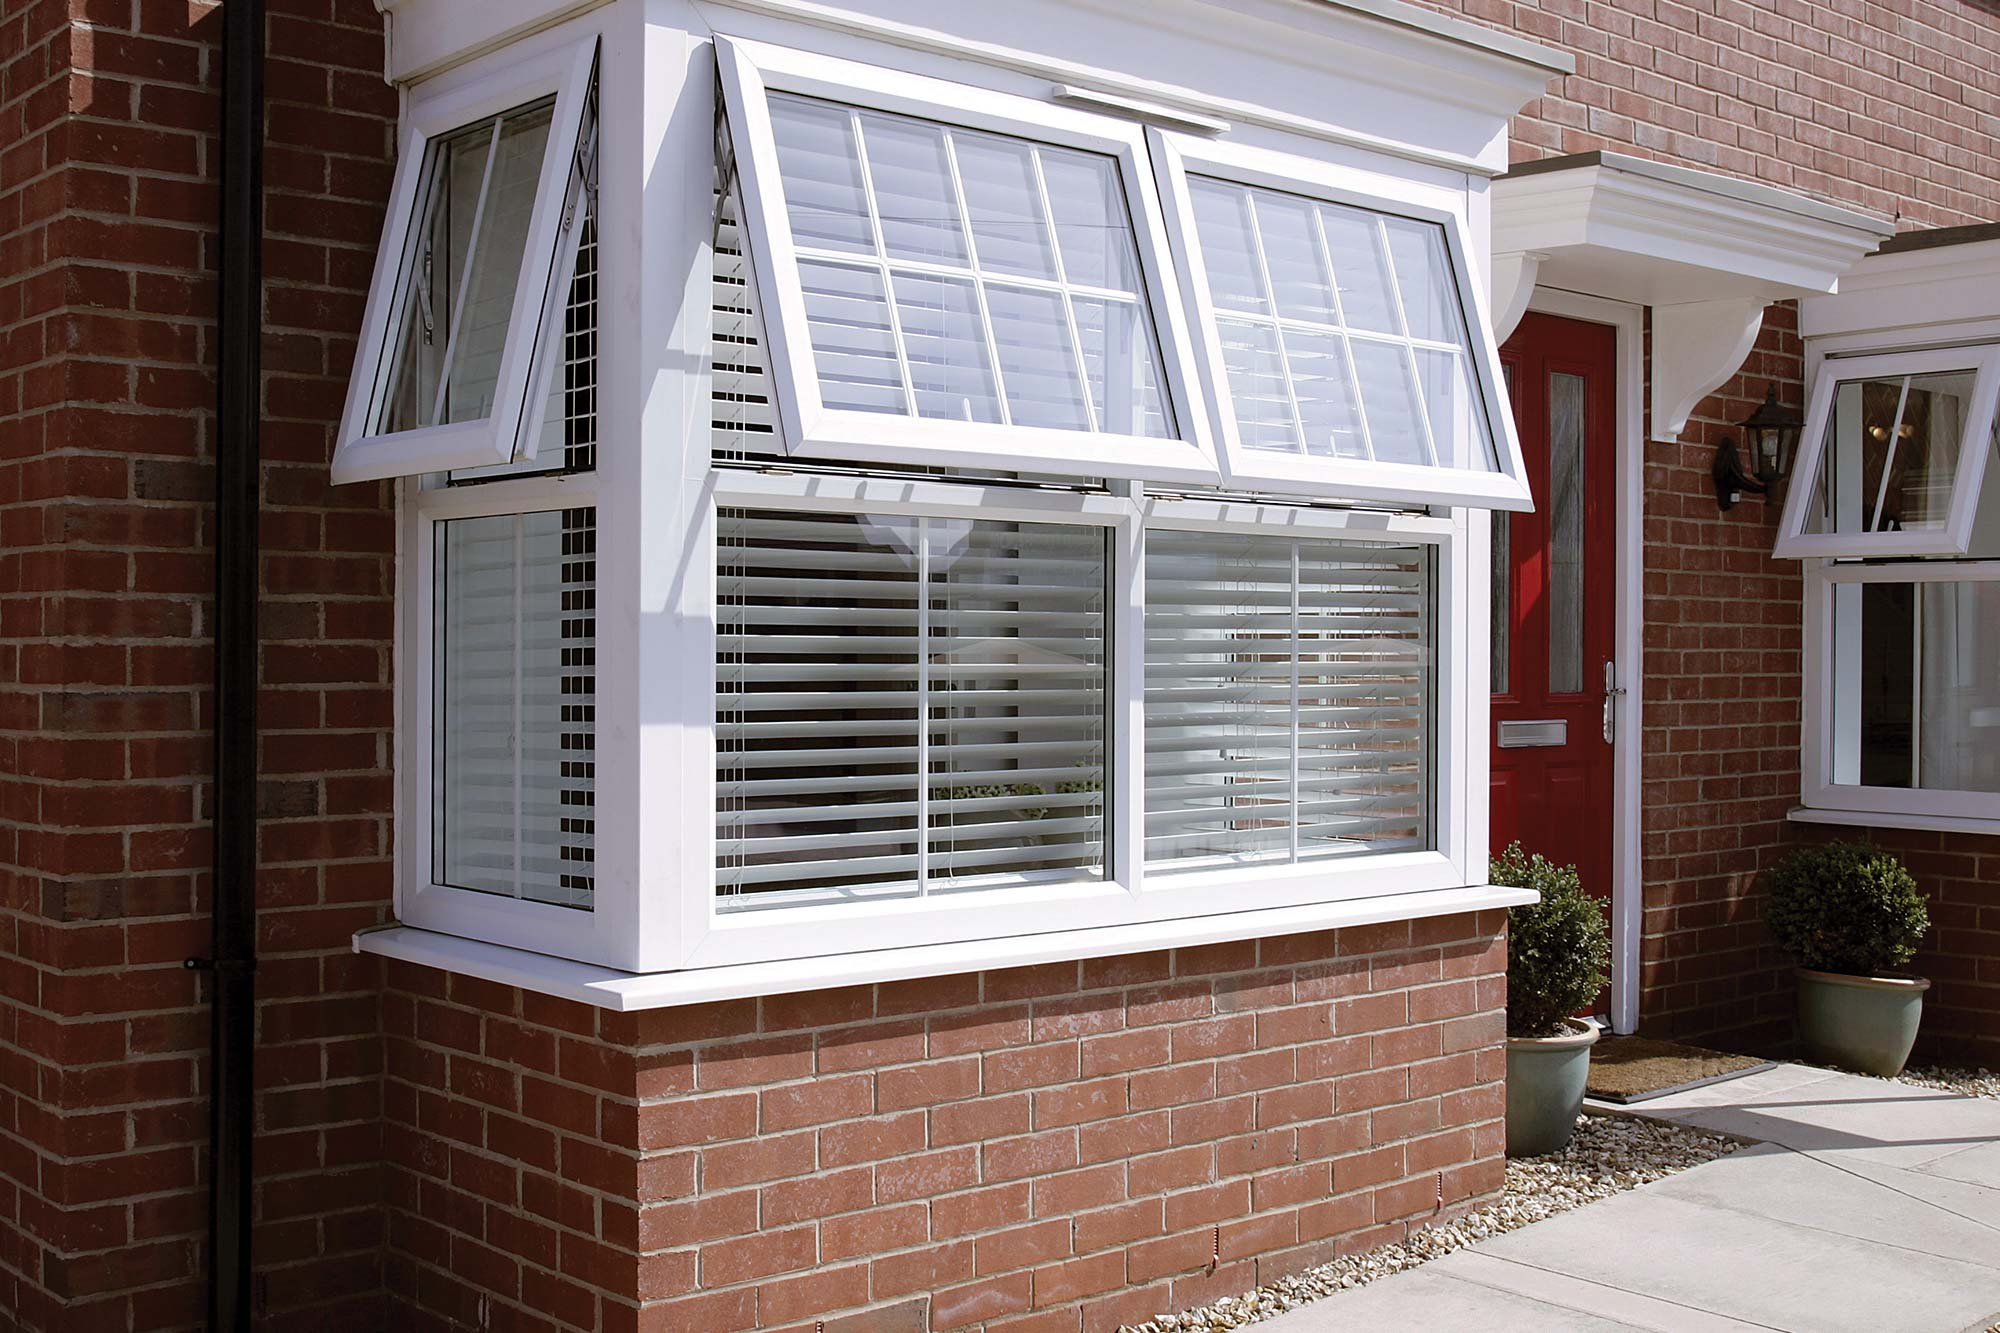 UPVC Windows in Knutsford